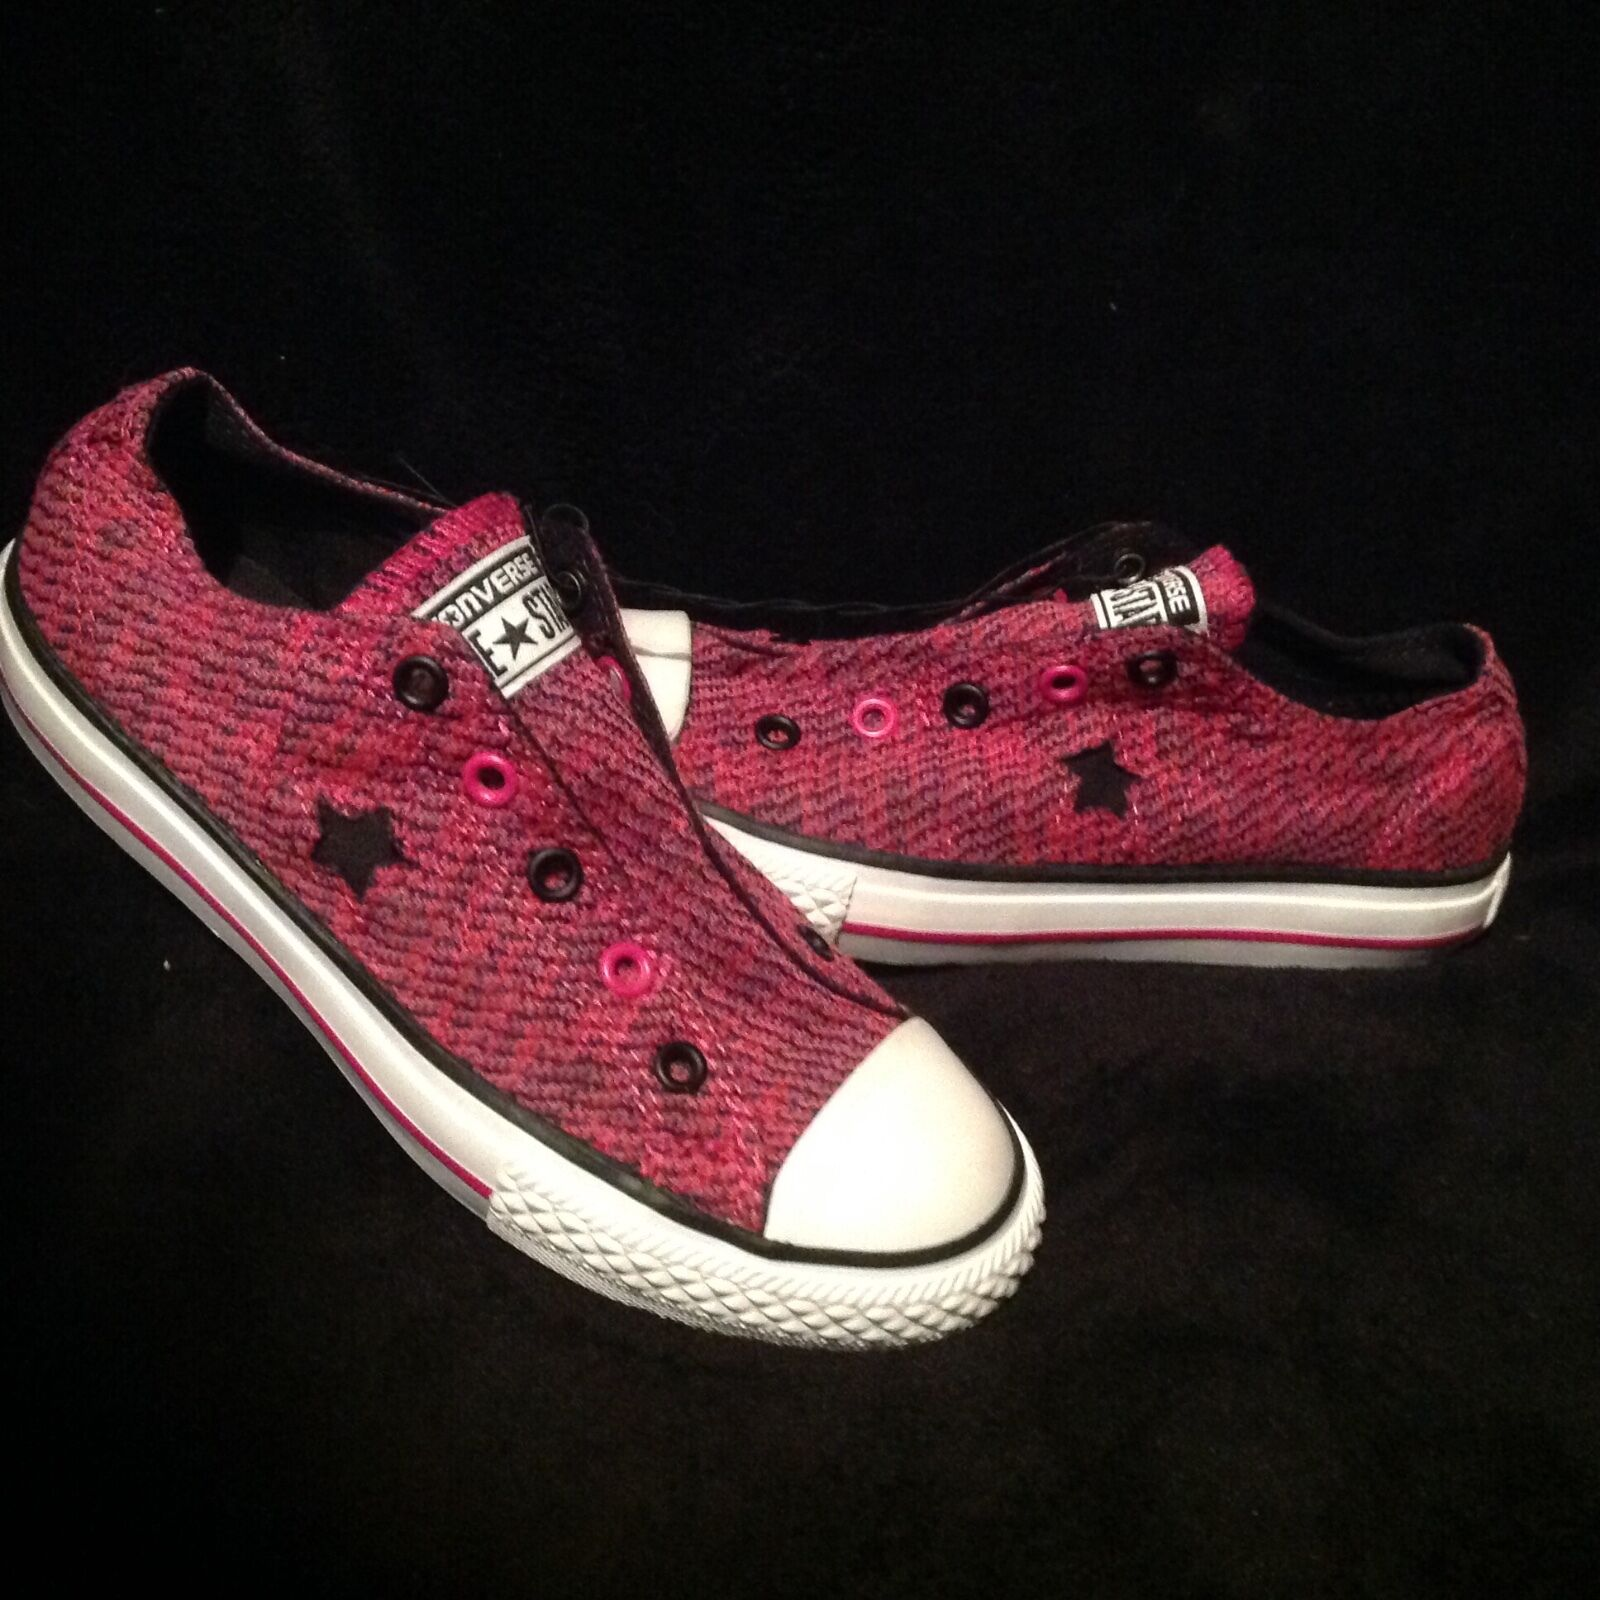 CONVERSE ONE STAR SHOES SNEAKER PINK BLACK GIRLS SIZE 1 or 2 NEW NO LACE